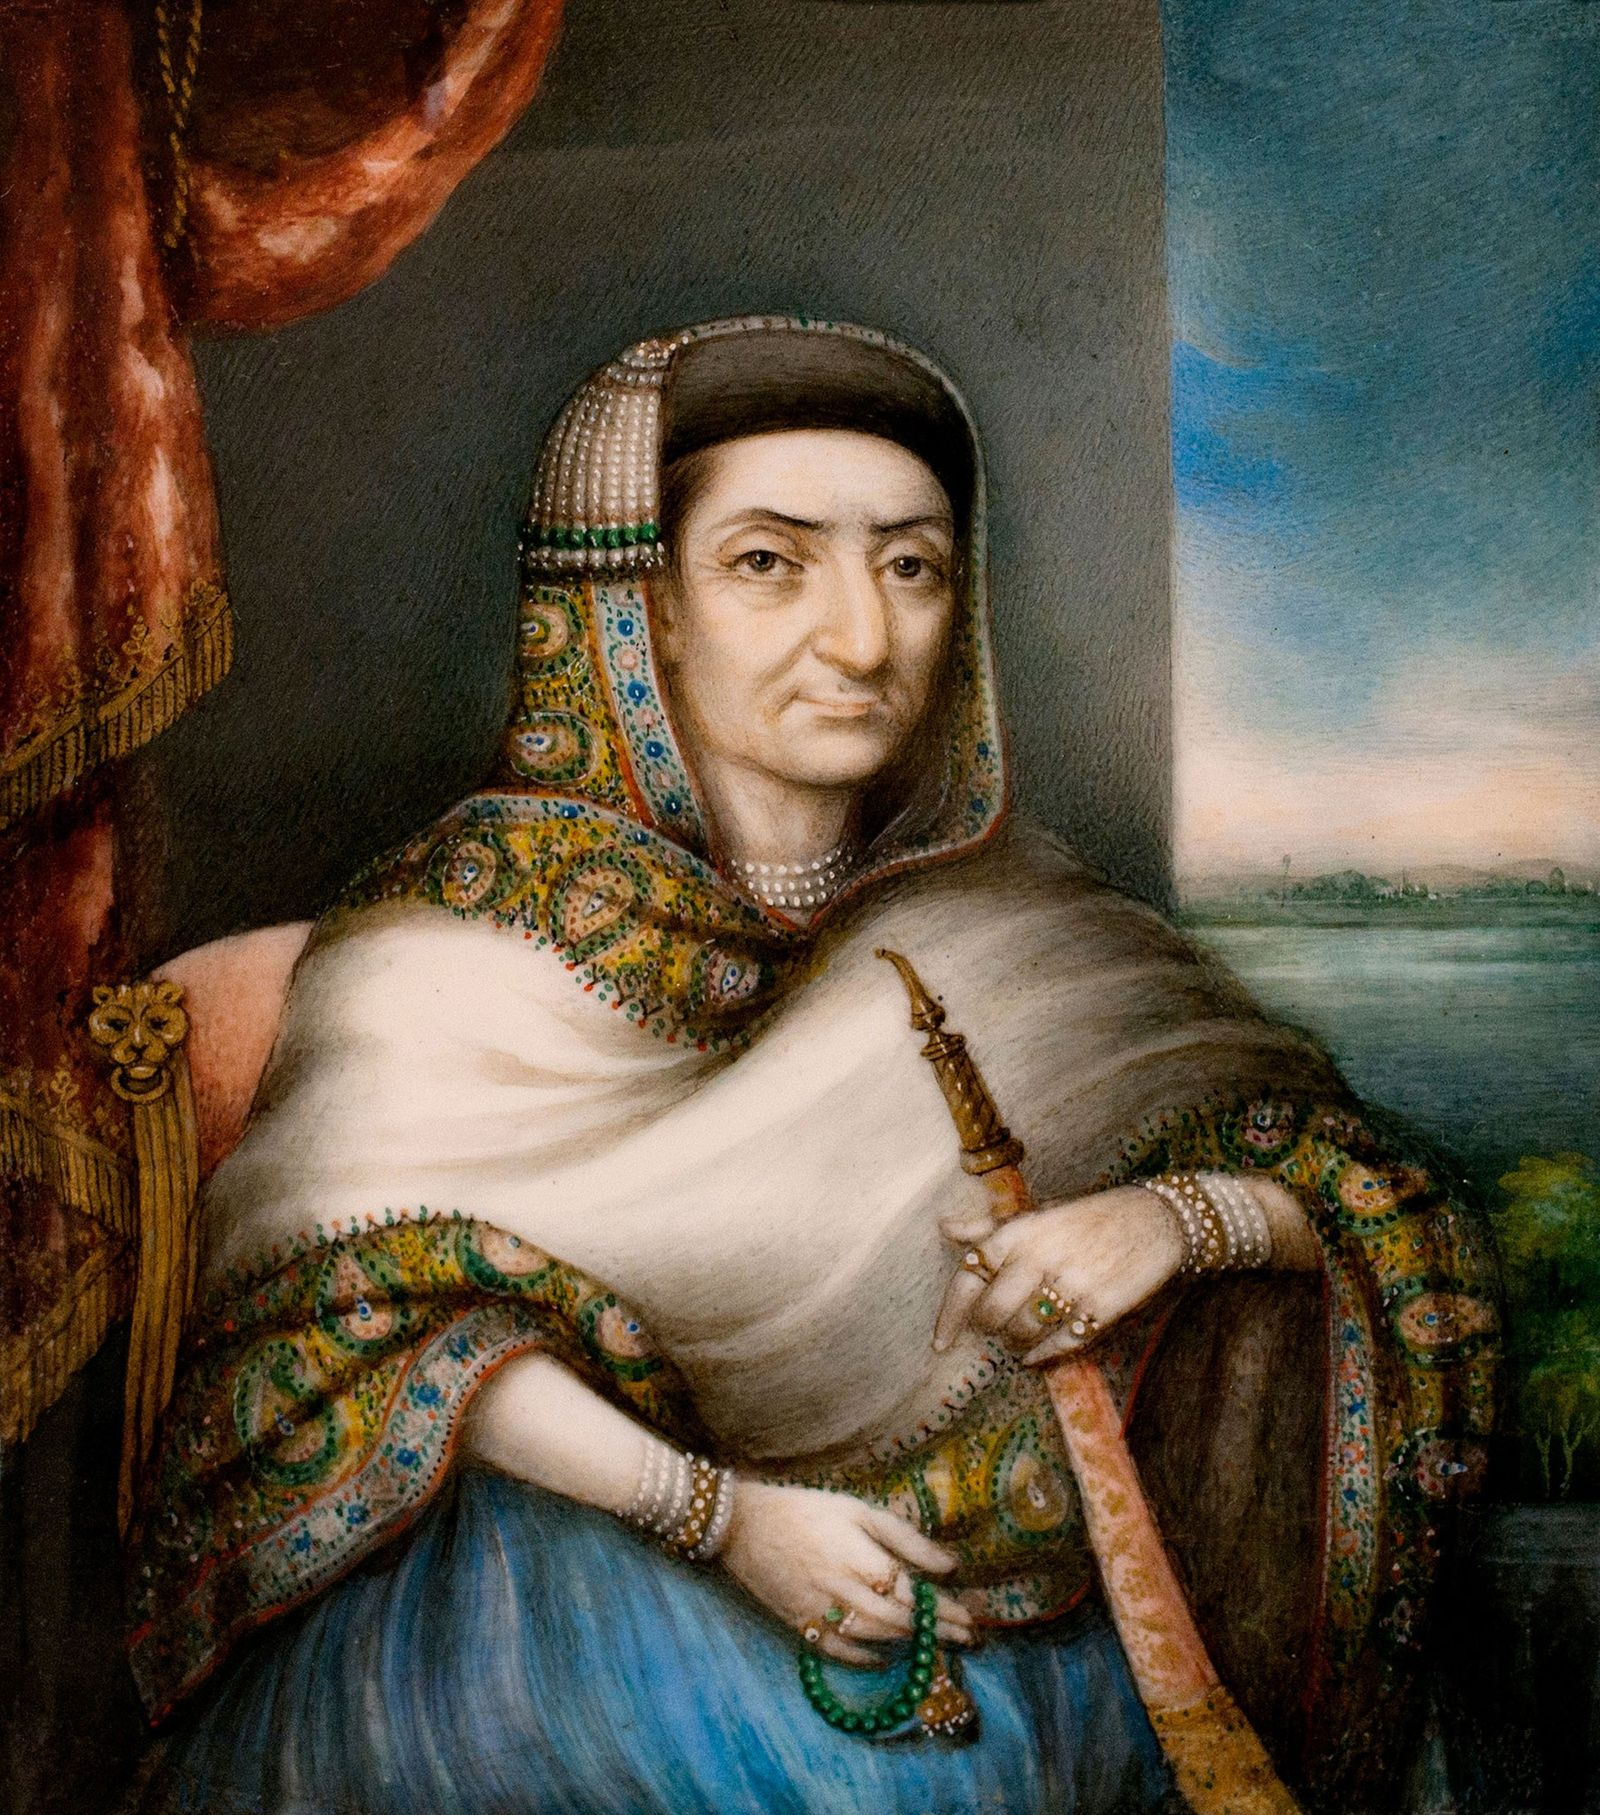 Begum Samru, la courtisane indienne devenue souveraine